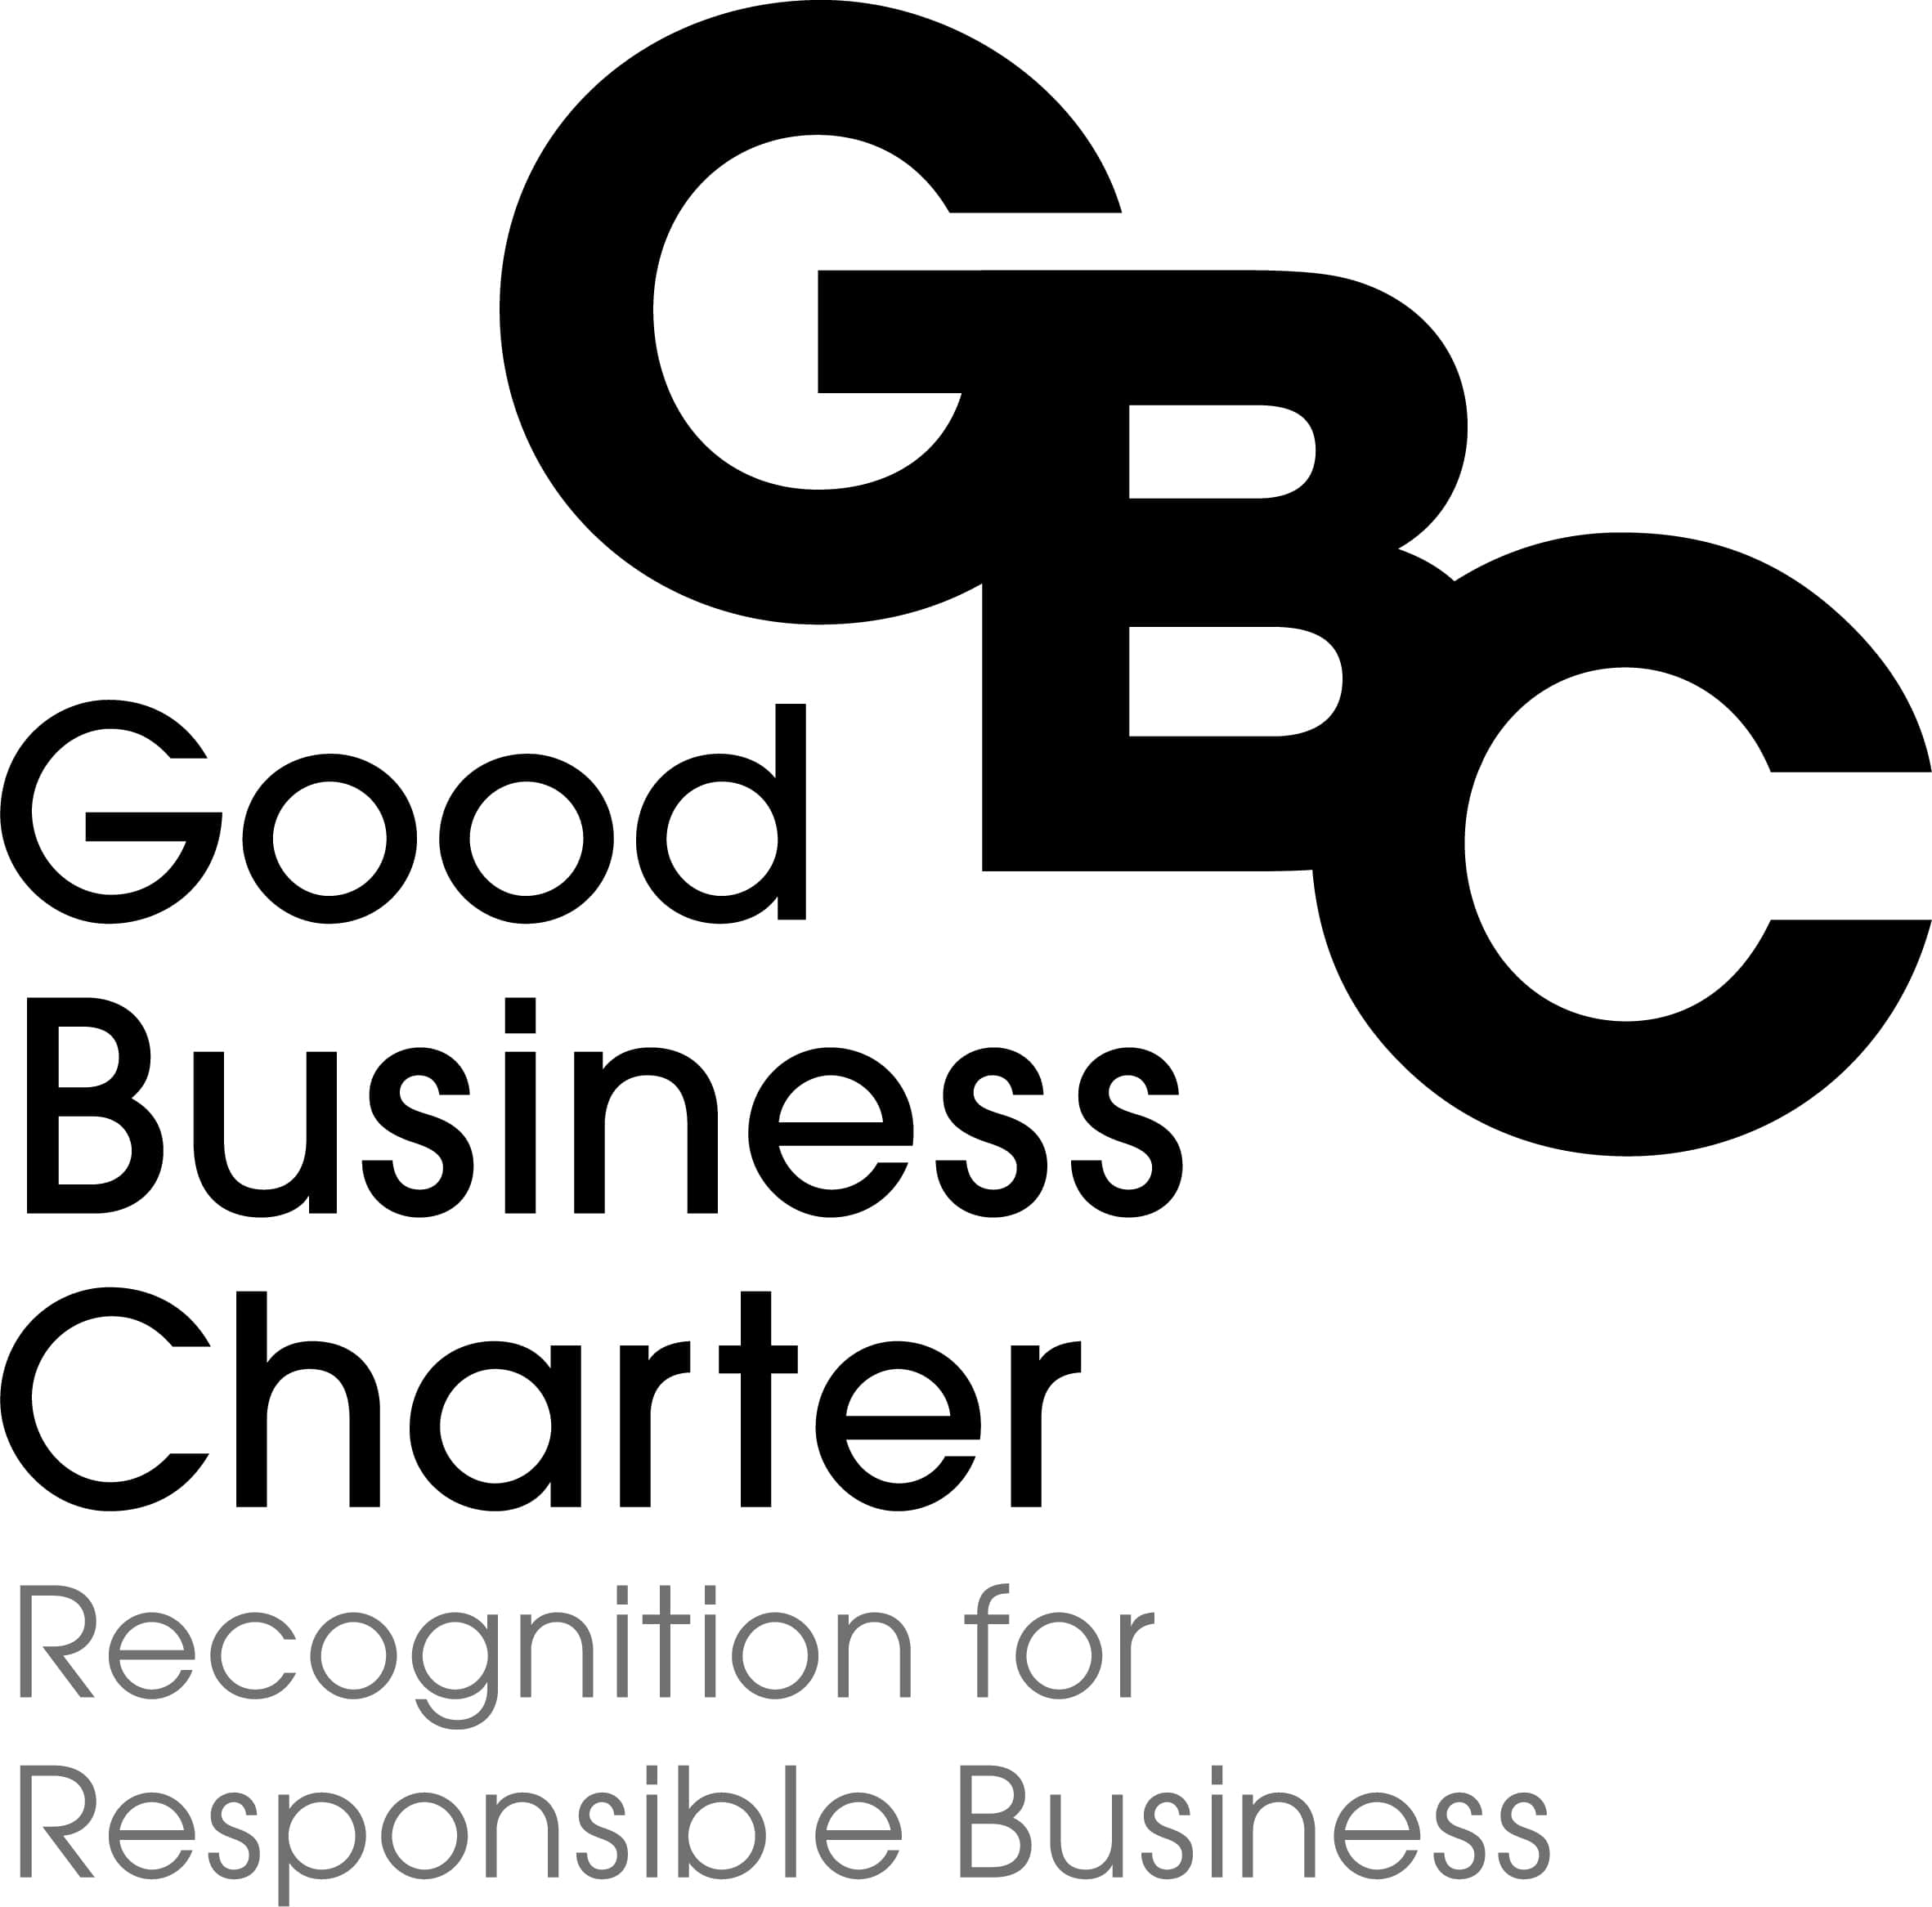 Good Business Charter accredited